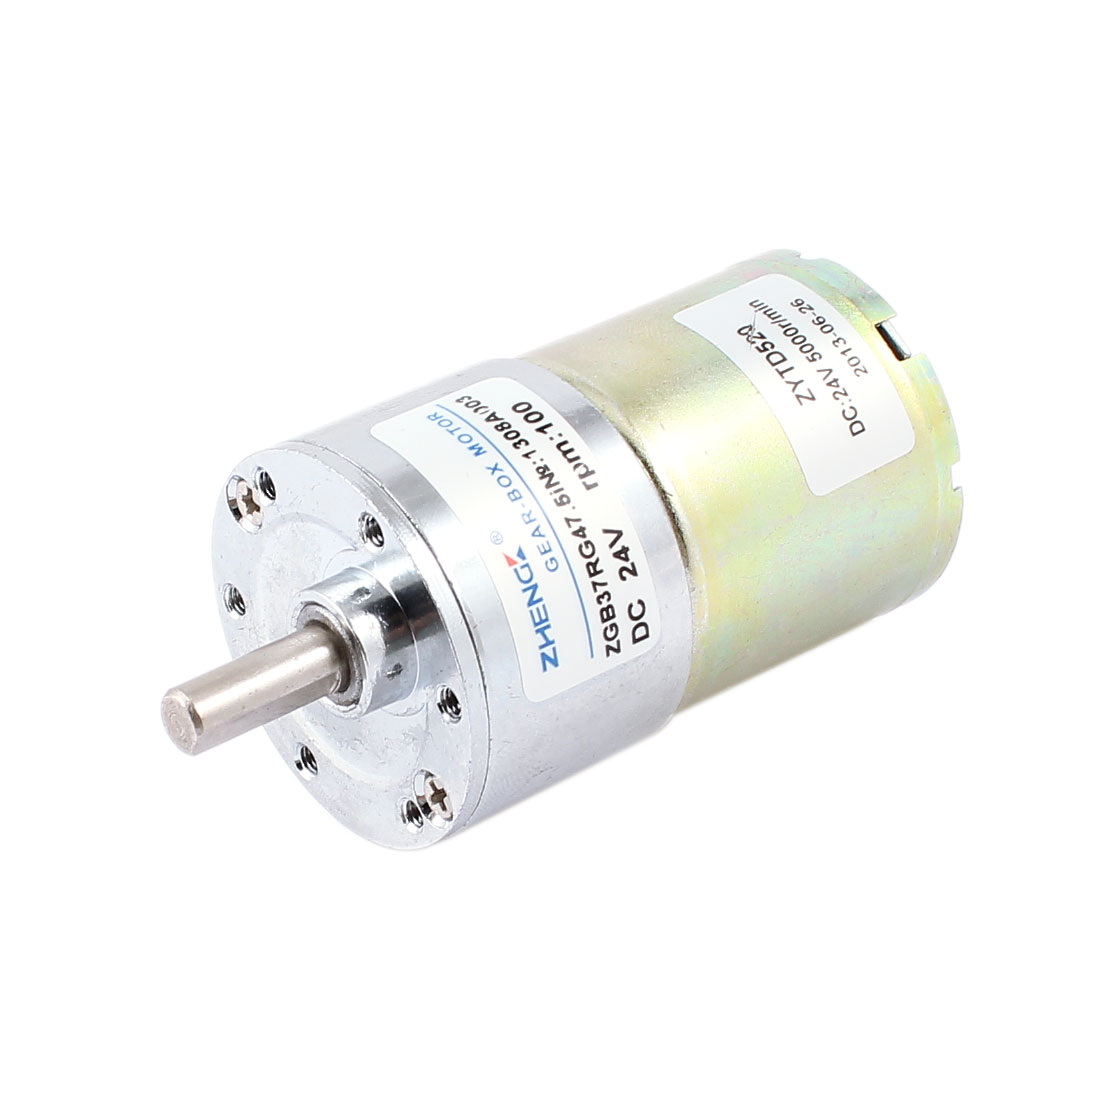 6mm Shaft 100RPM Output Speed 24V Reduce DC Magnetic Geared Motor